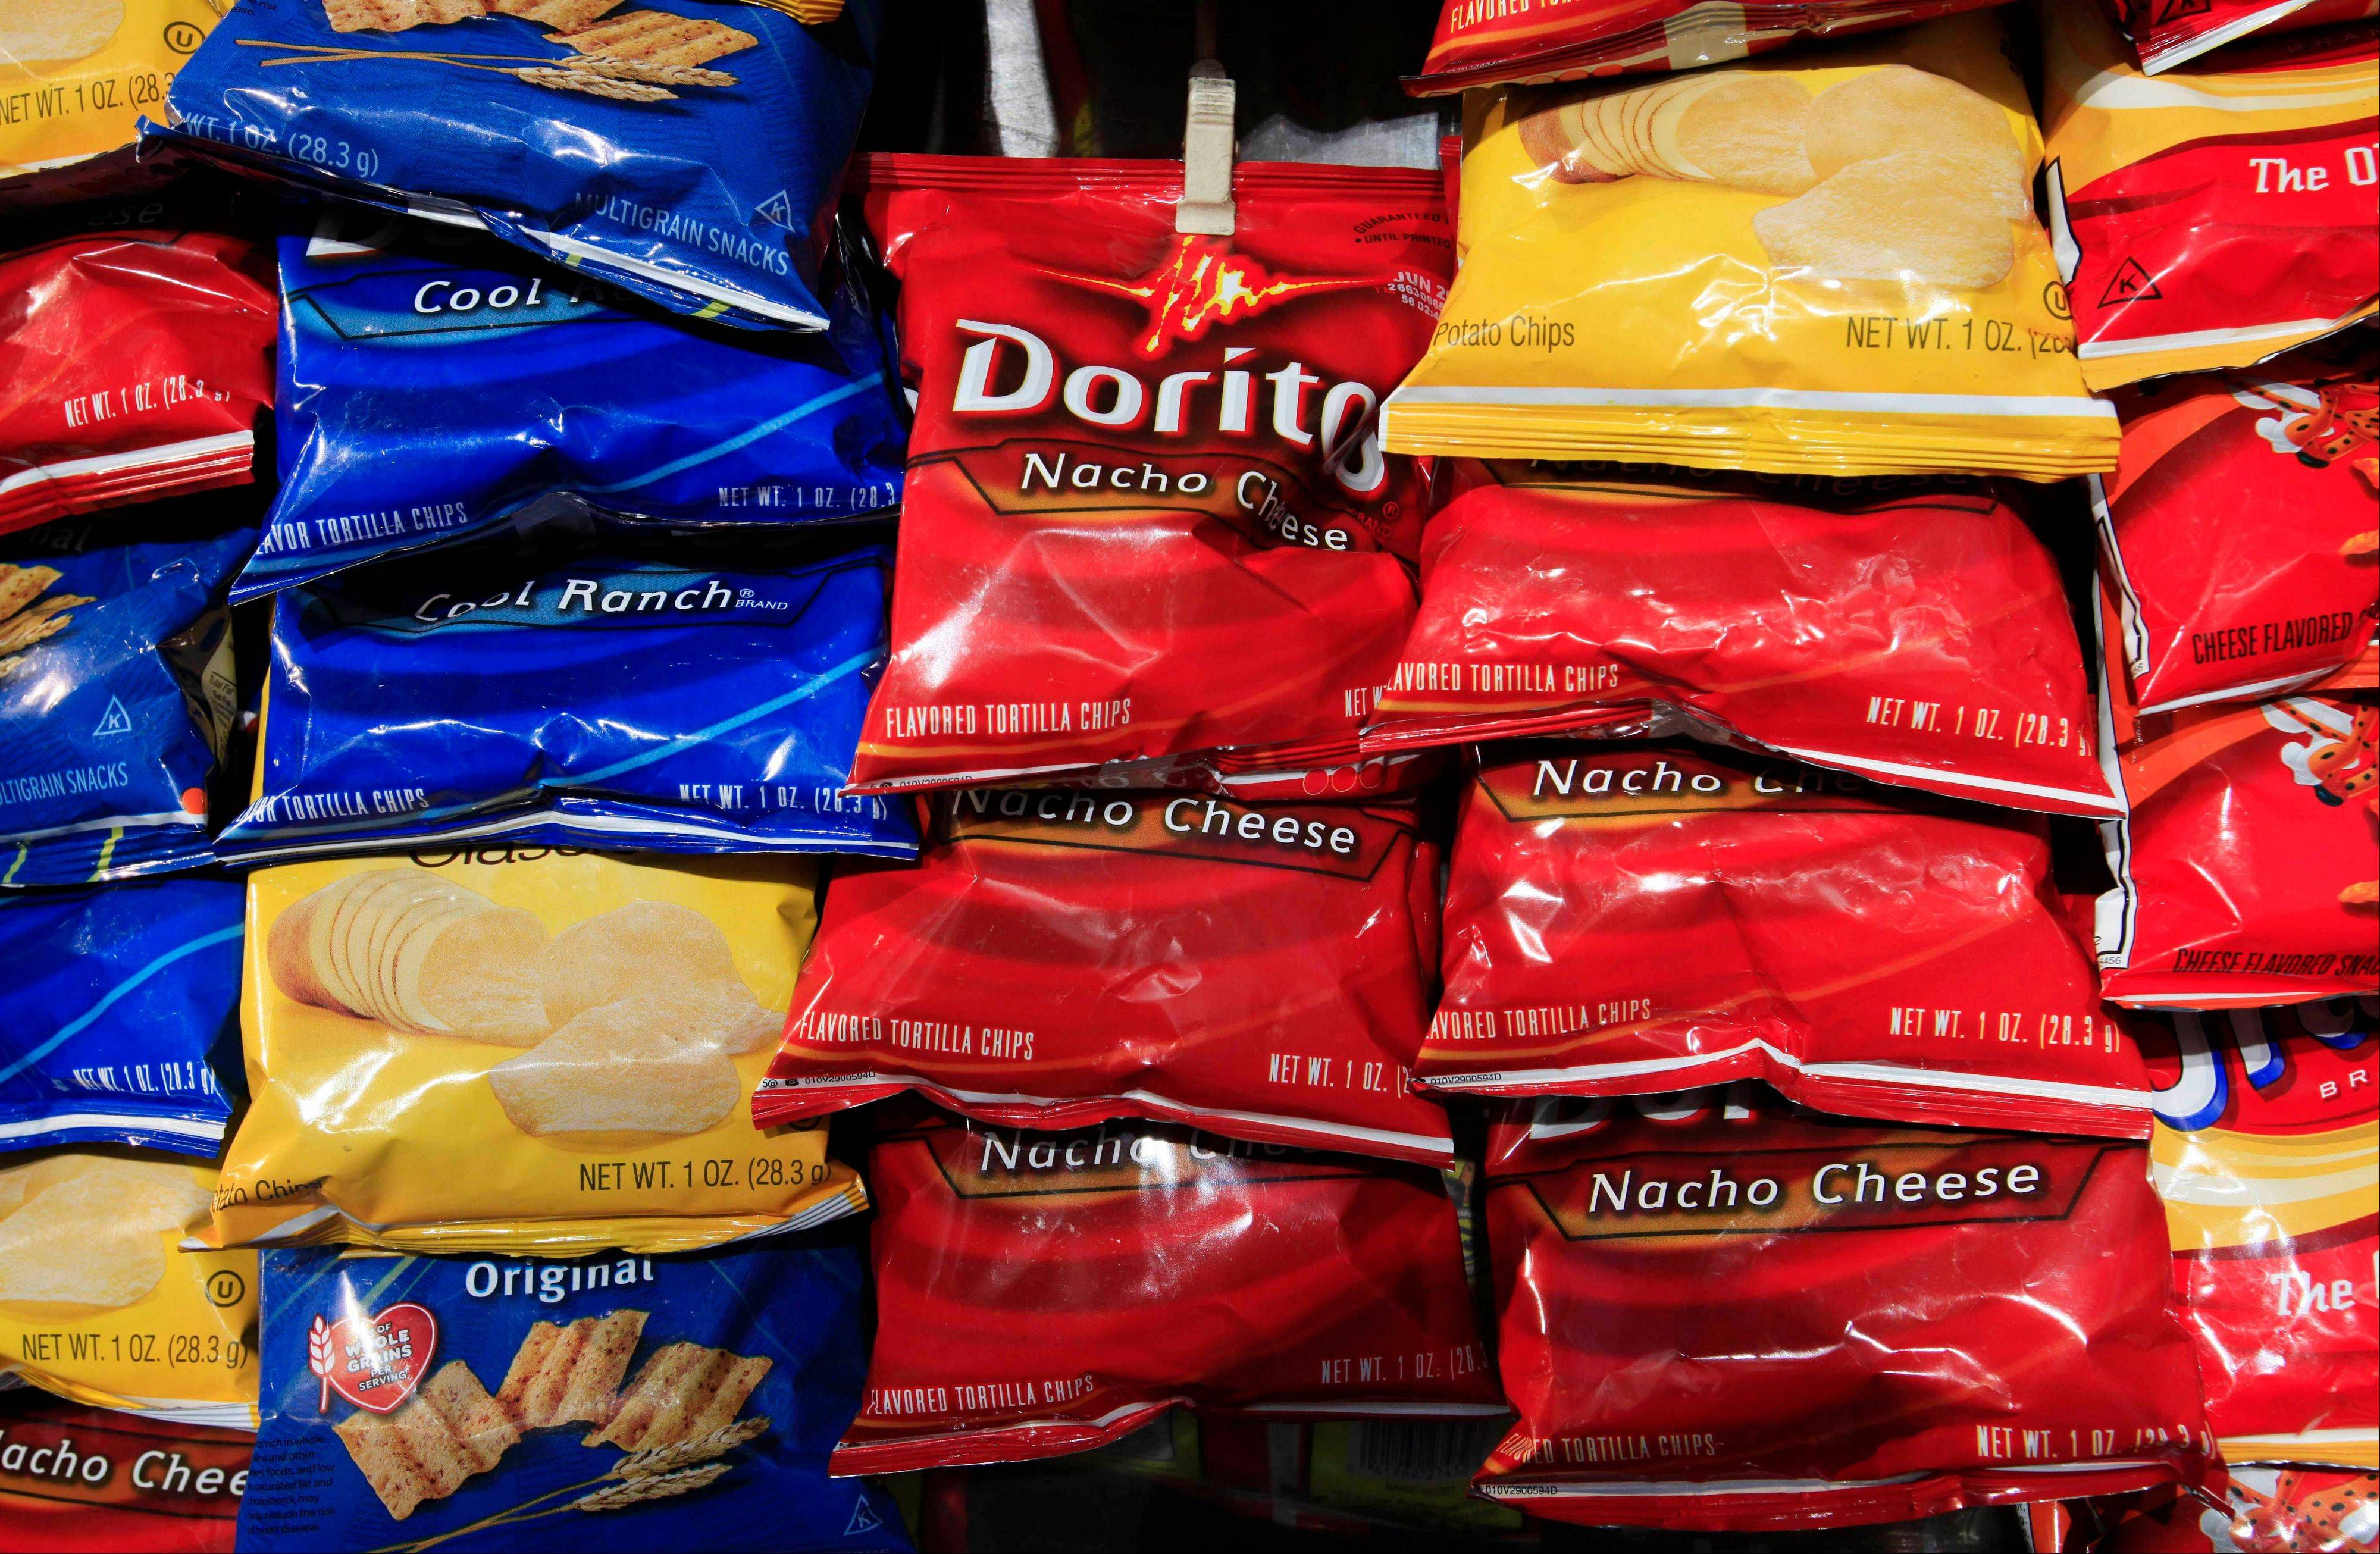 "ASSOCIATED PRESSThe snack food giant Frito-Lay plans to roll out its Doritos in a ""Taco Bell"" flavor as a limited-time product this spring, aiming to capitalize on the popularity of the Doritos-flavored tacos introduced by the fast-food chain last year."